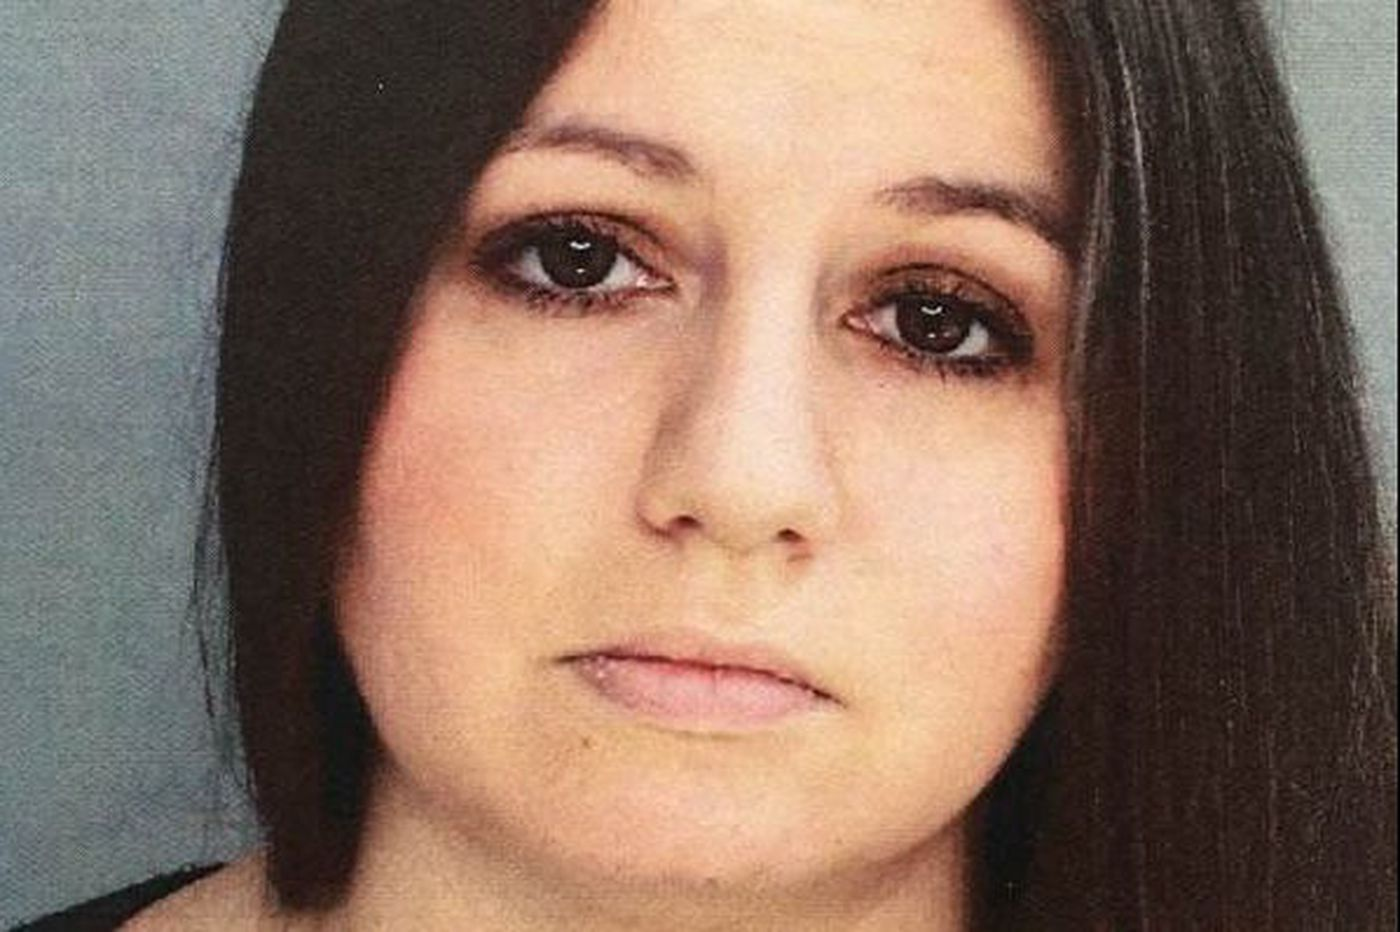 Montco woman, 31, charged in accident that killed 80-year-old man